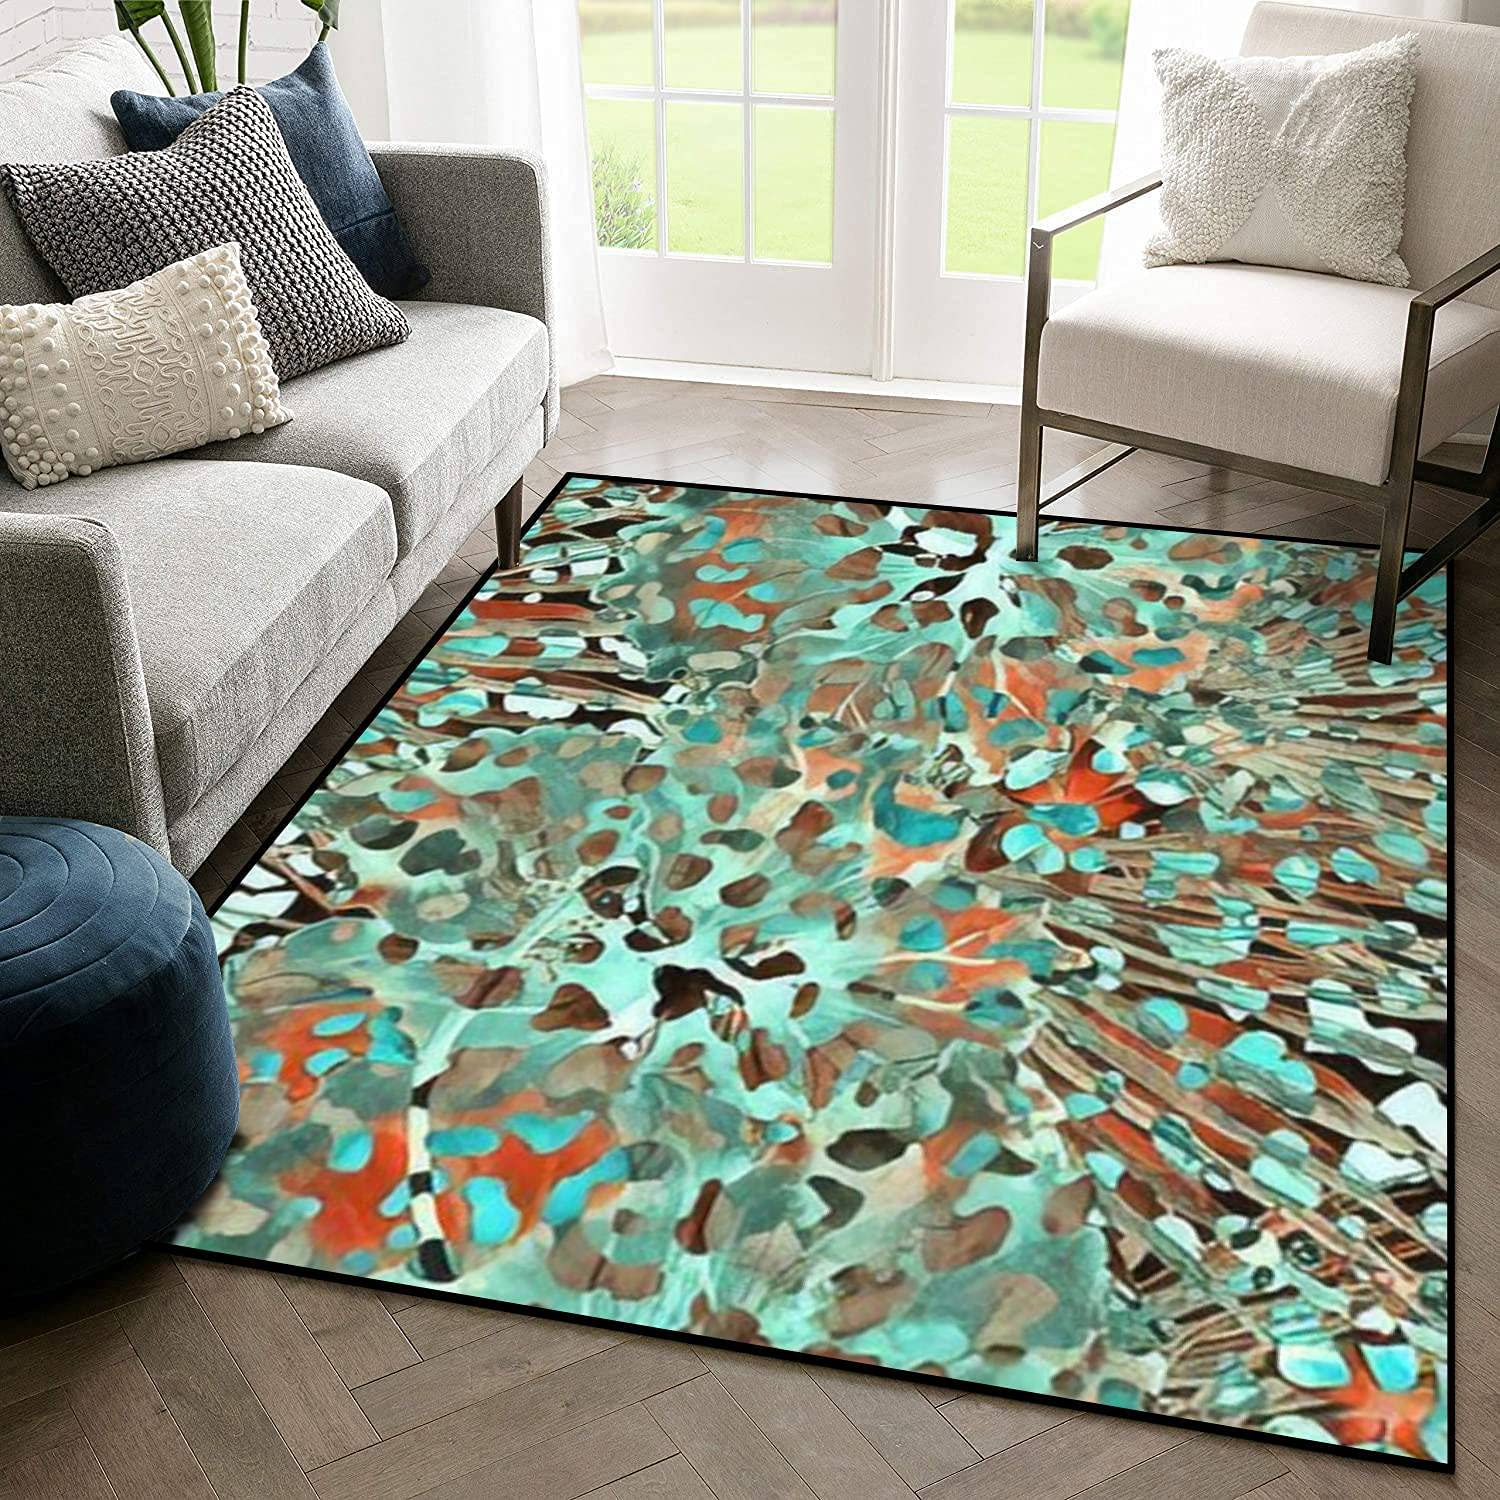 Indoor Outdoor Area Super intense SALE Excellence Soft Rug Leopard Pattern Watercolor Seamless